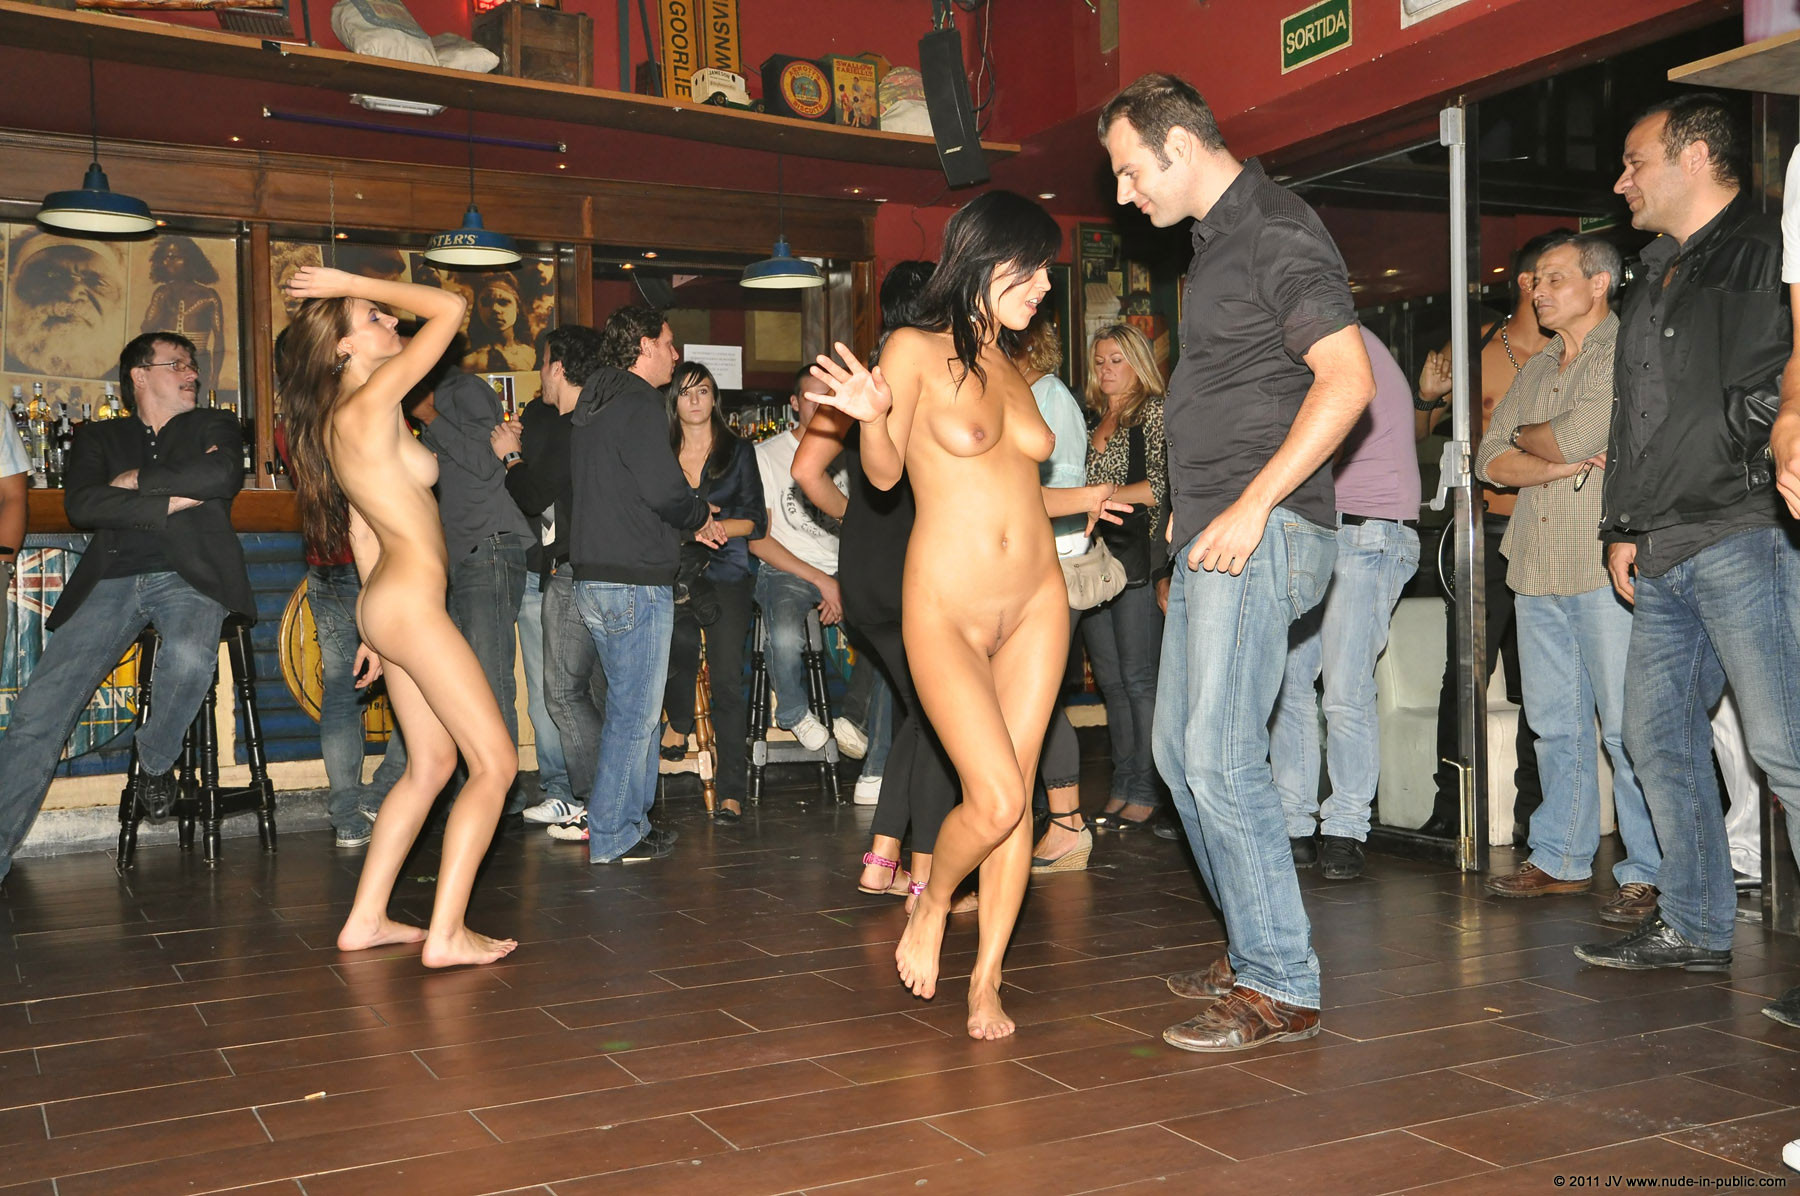 Nude In Public - Page 5 - Sex, Porn  Other Nsfw Content -5145